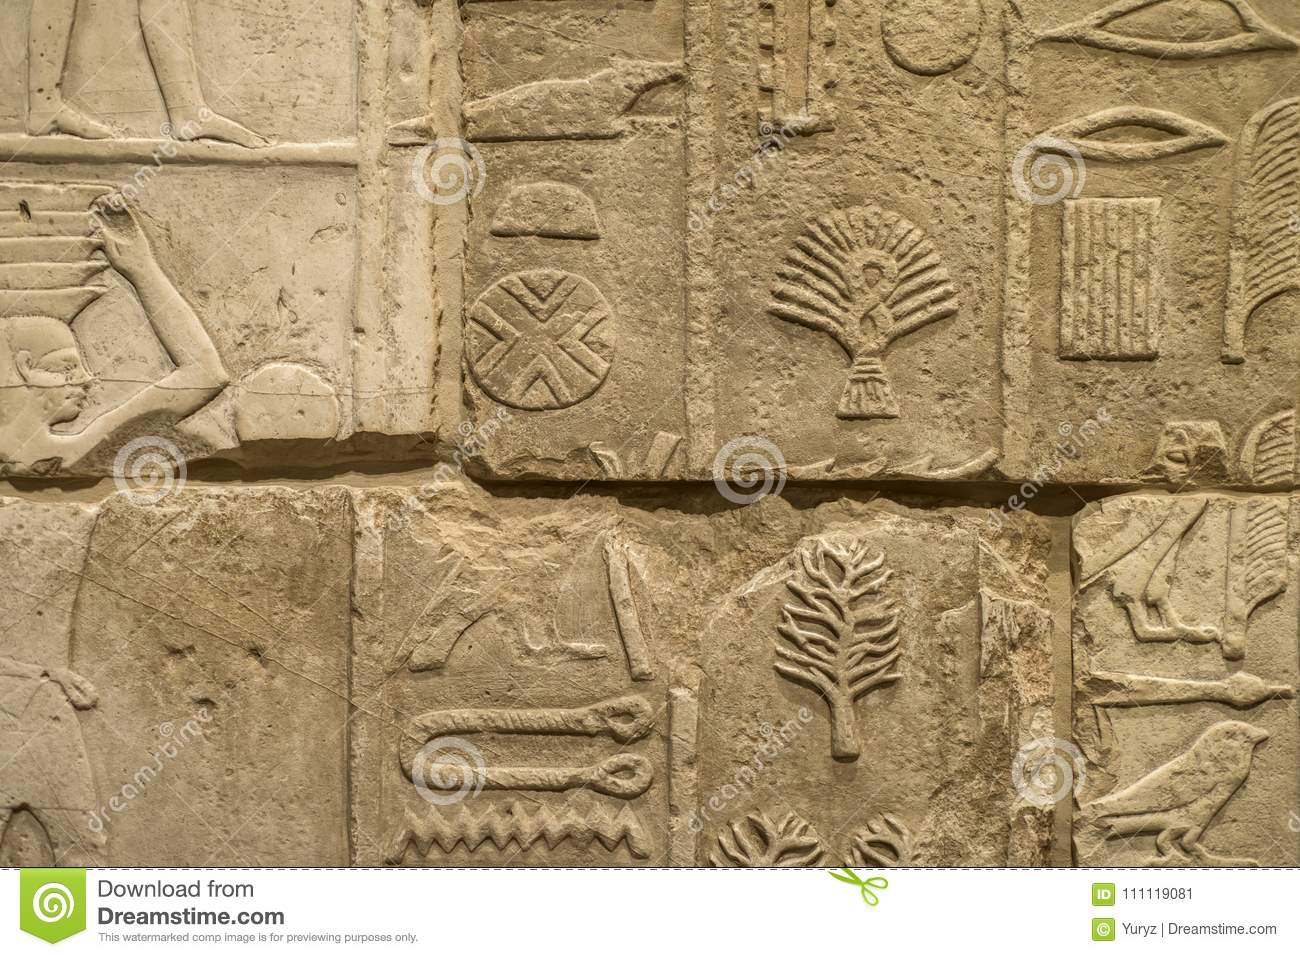 Egyptian stone carving stock photos images